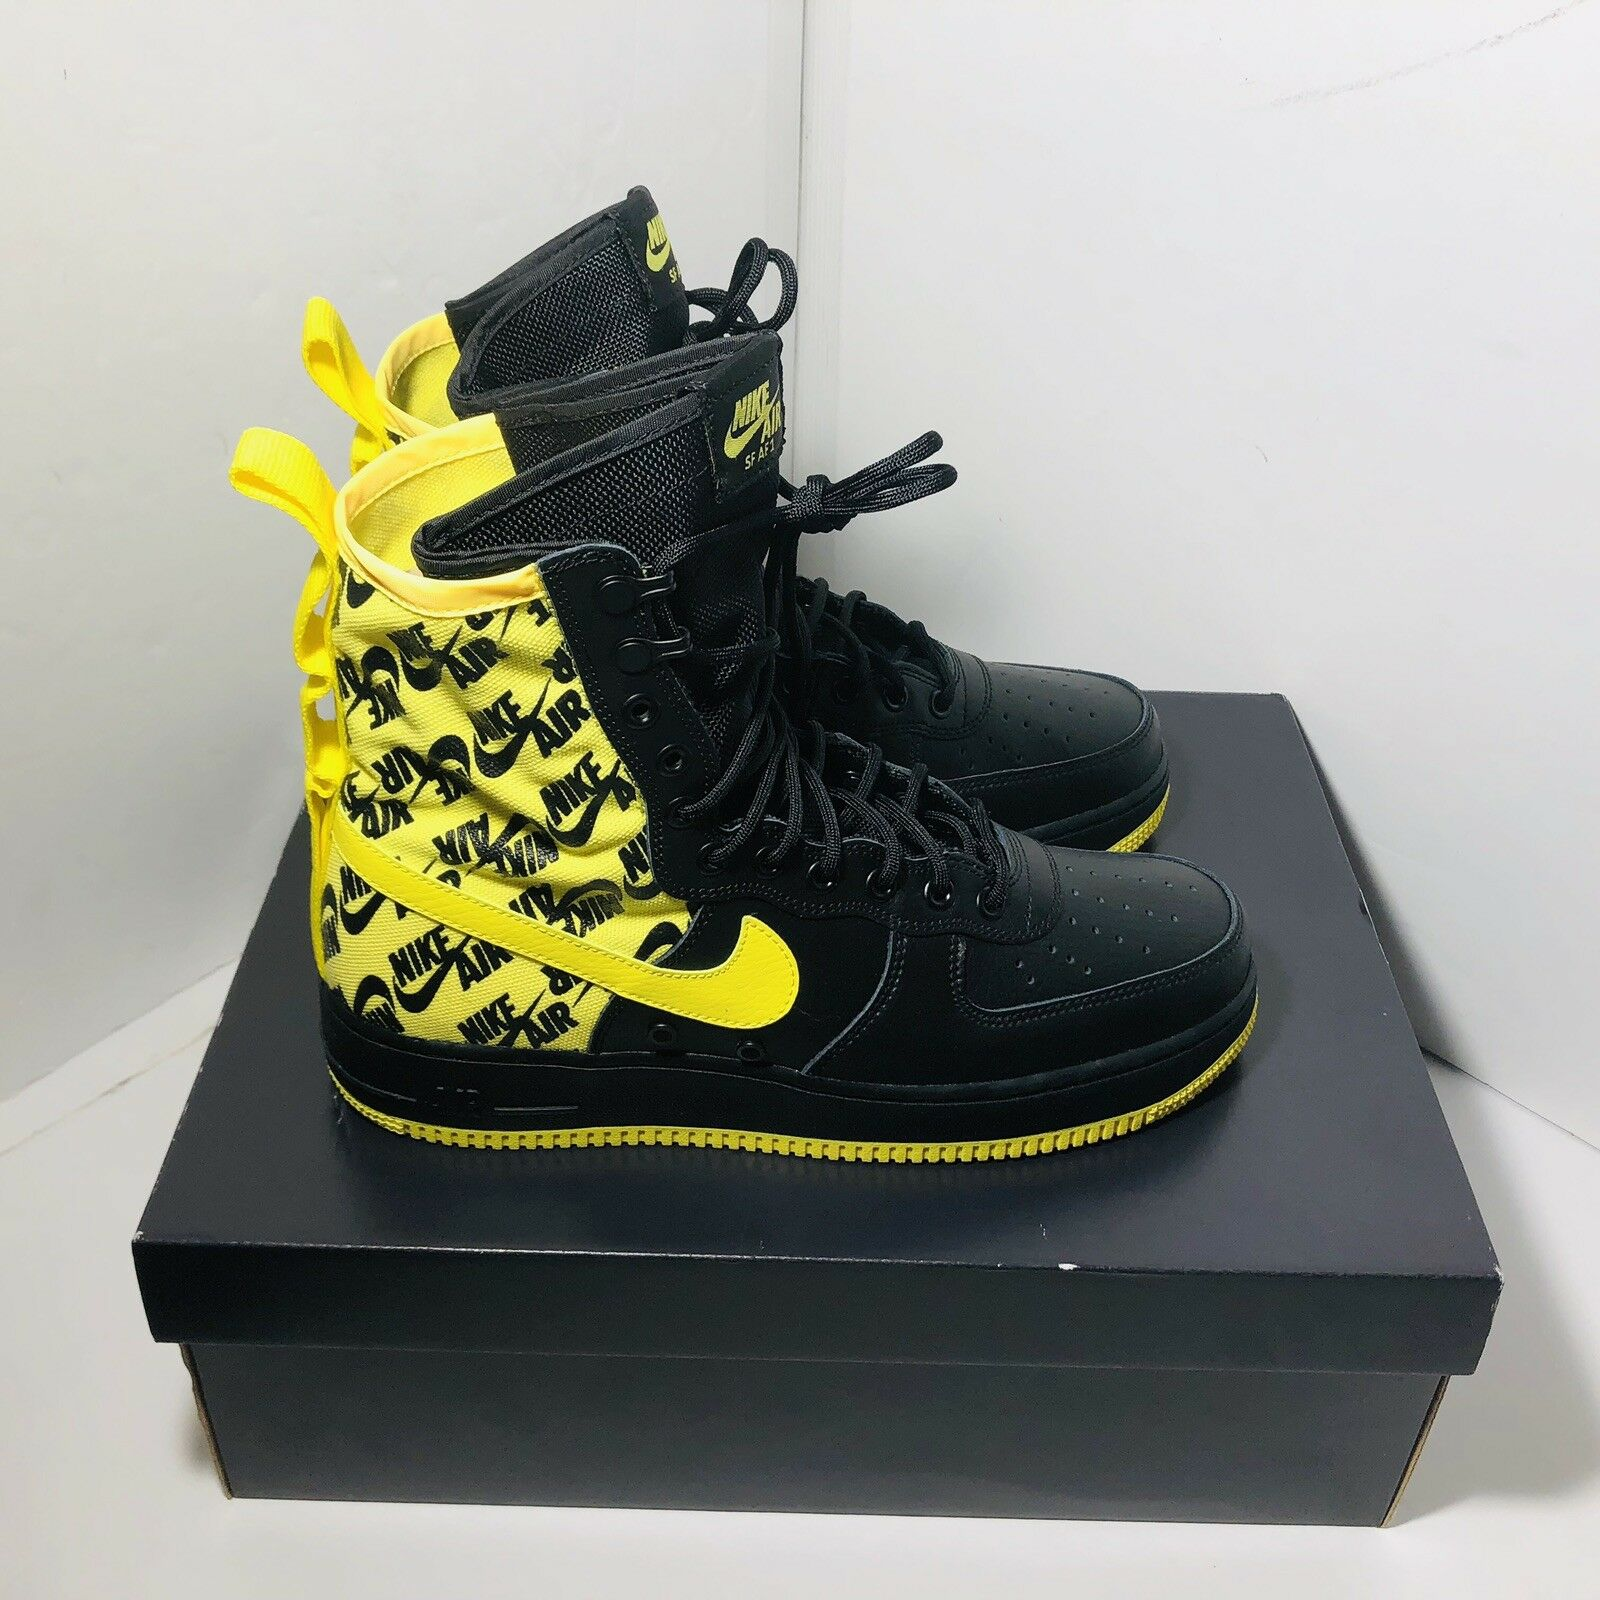 Nike SF AF1 Air Force One High Dynamic Yellow Black Size 9 AR1955-001